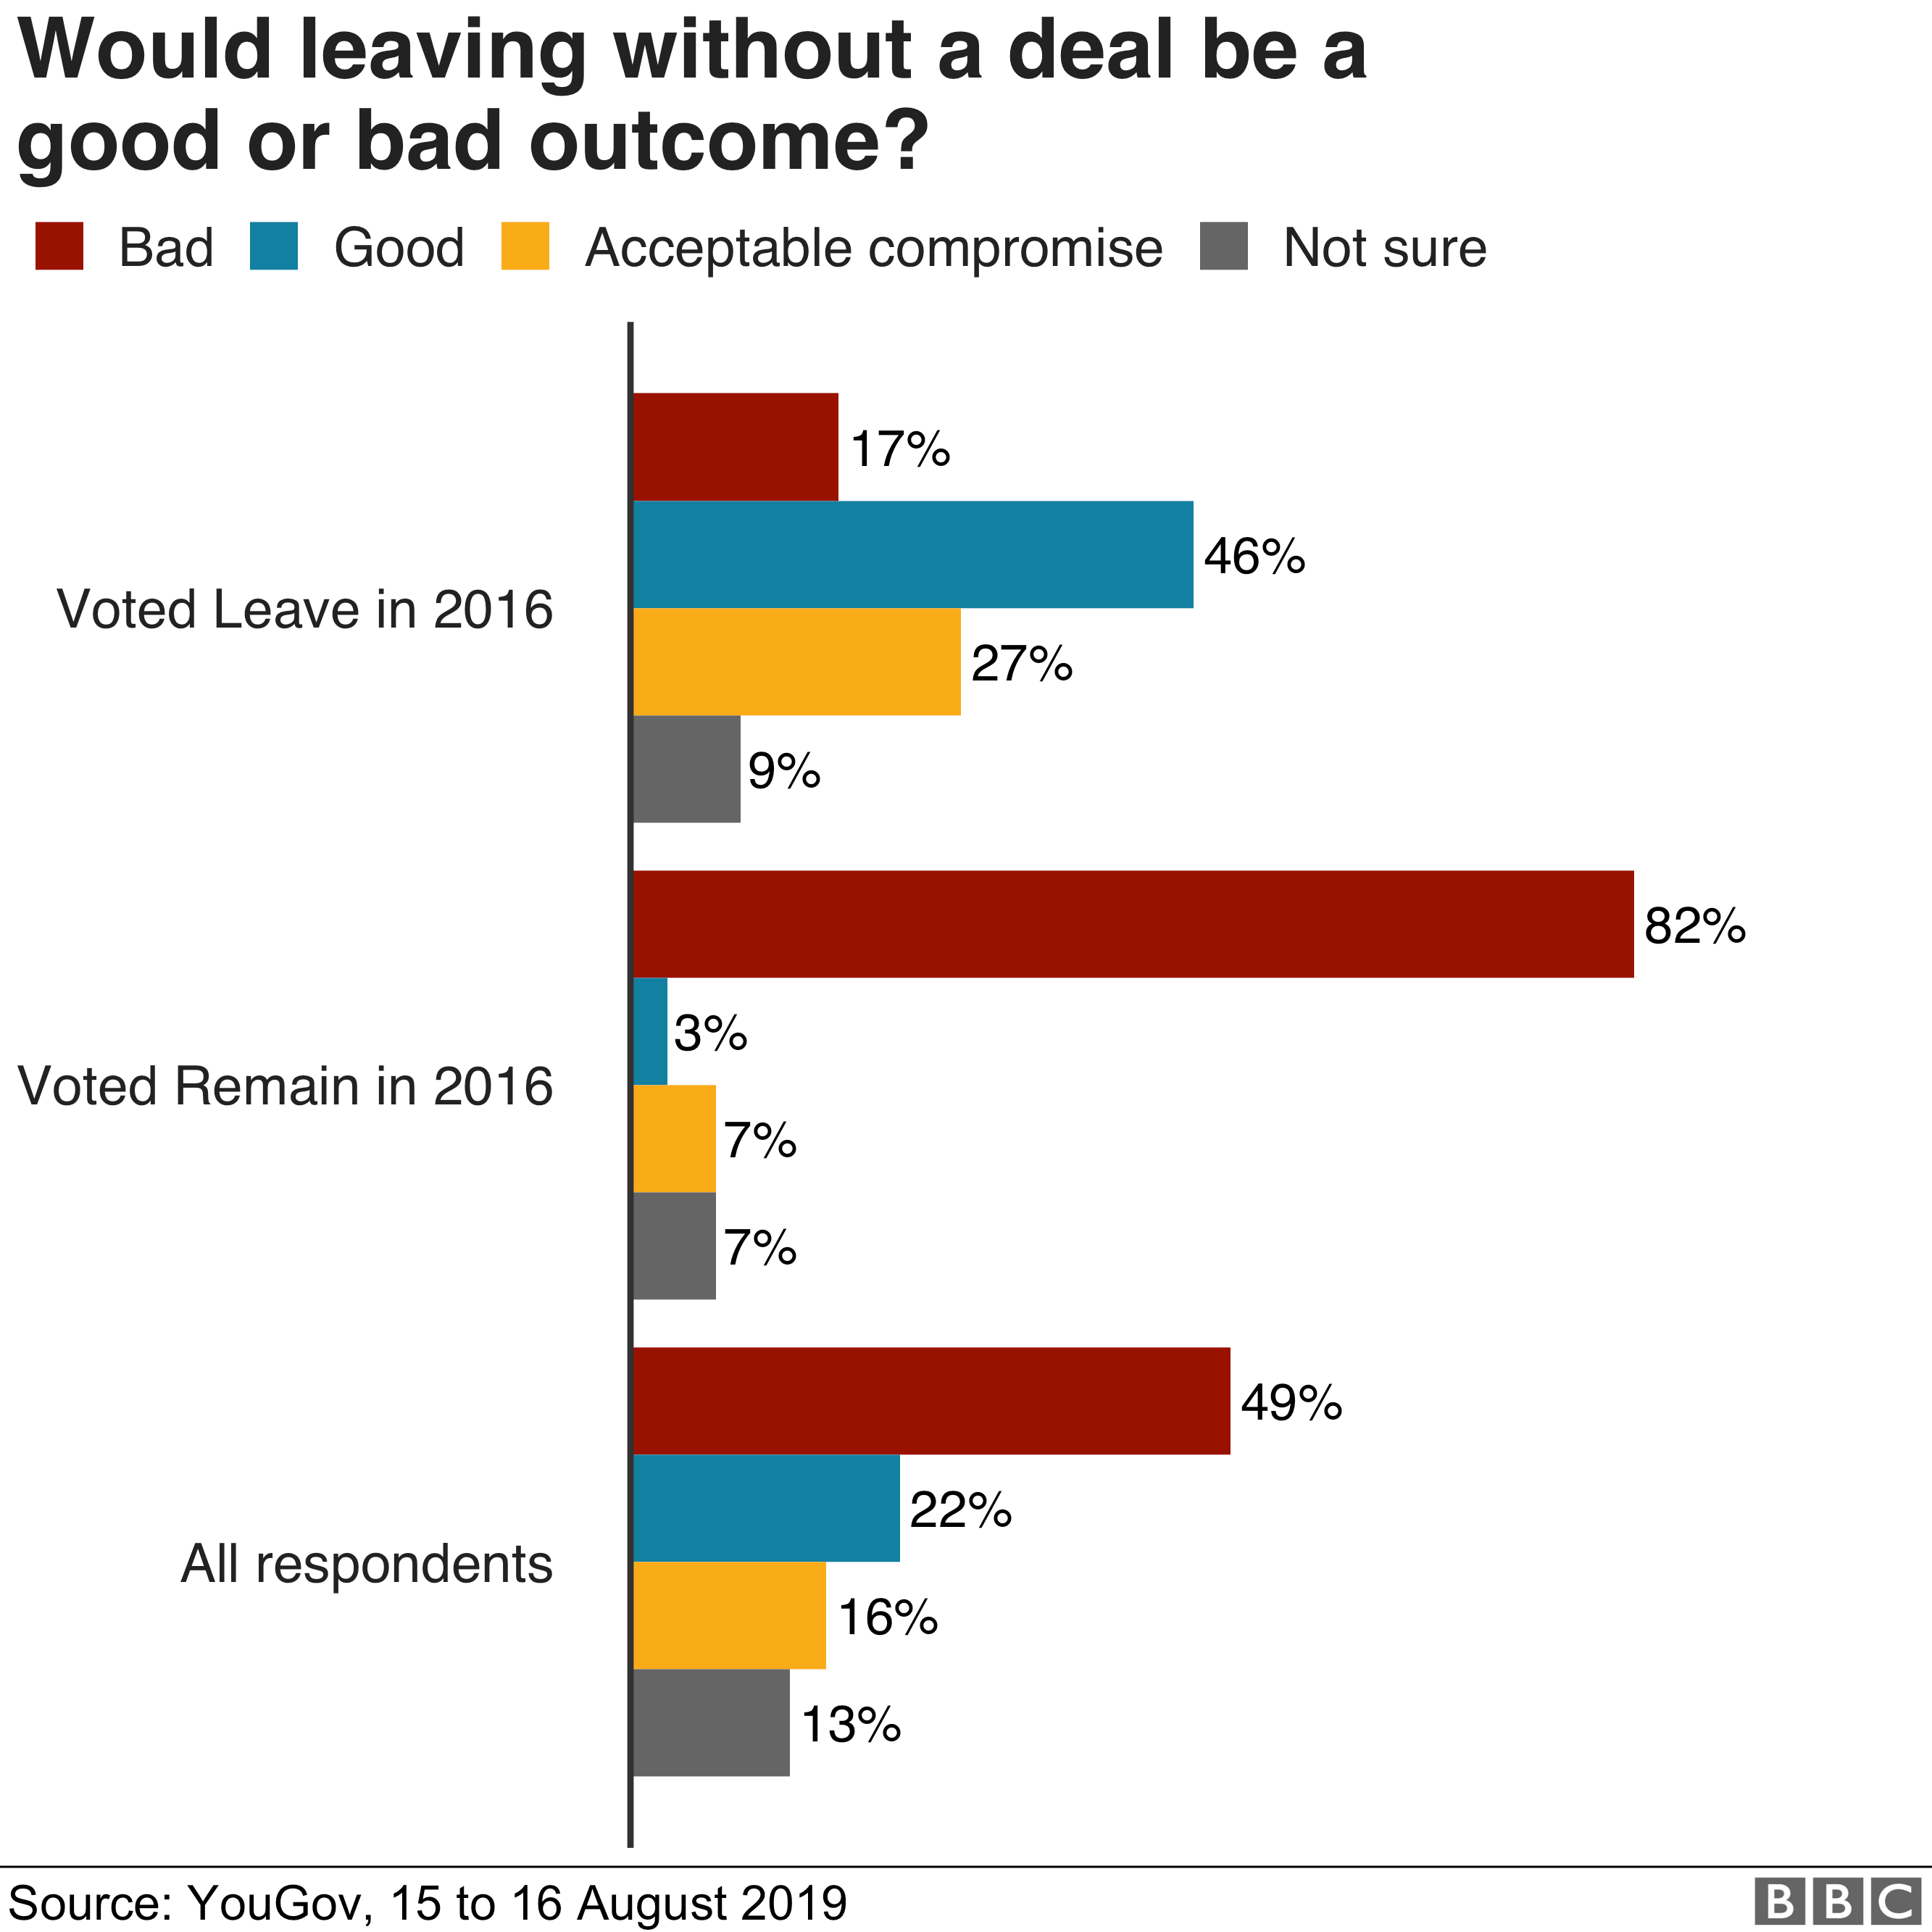 Chart show opinion on leaving without a deal being a good or bad outcome